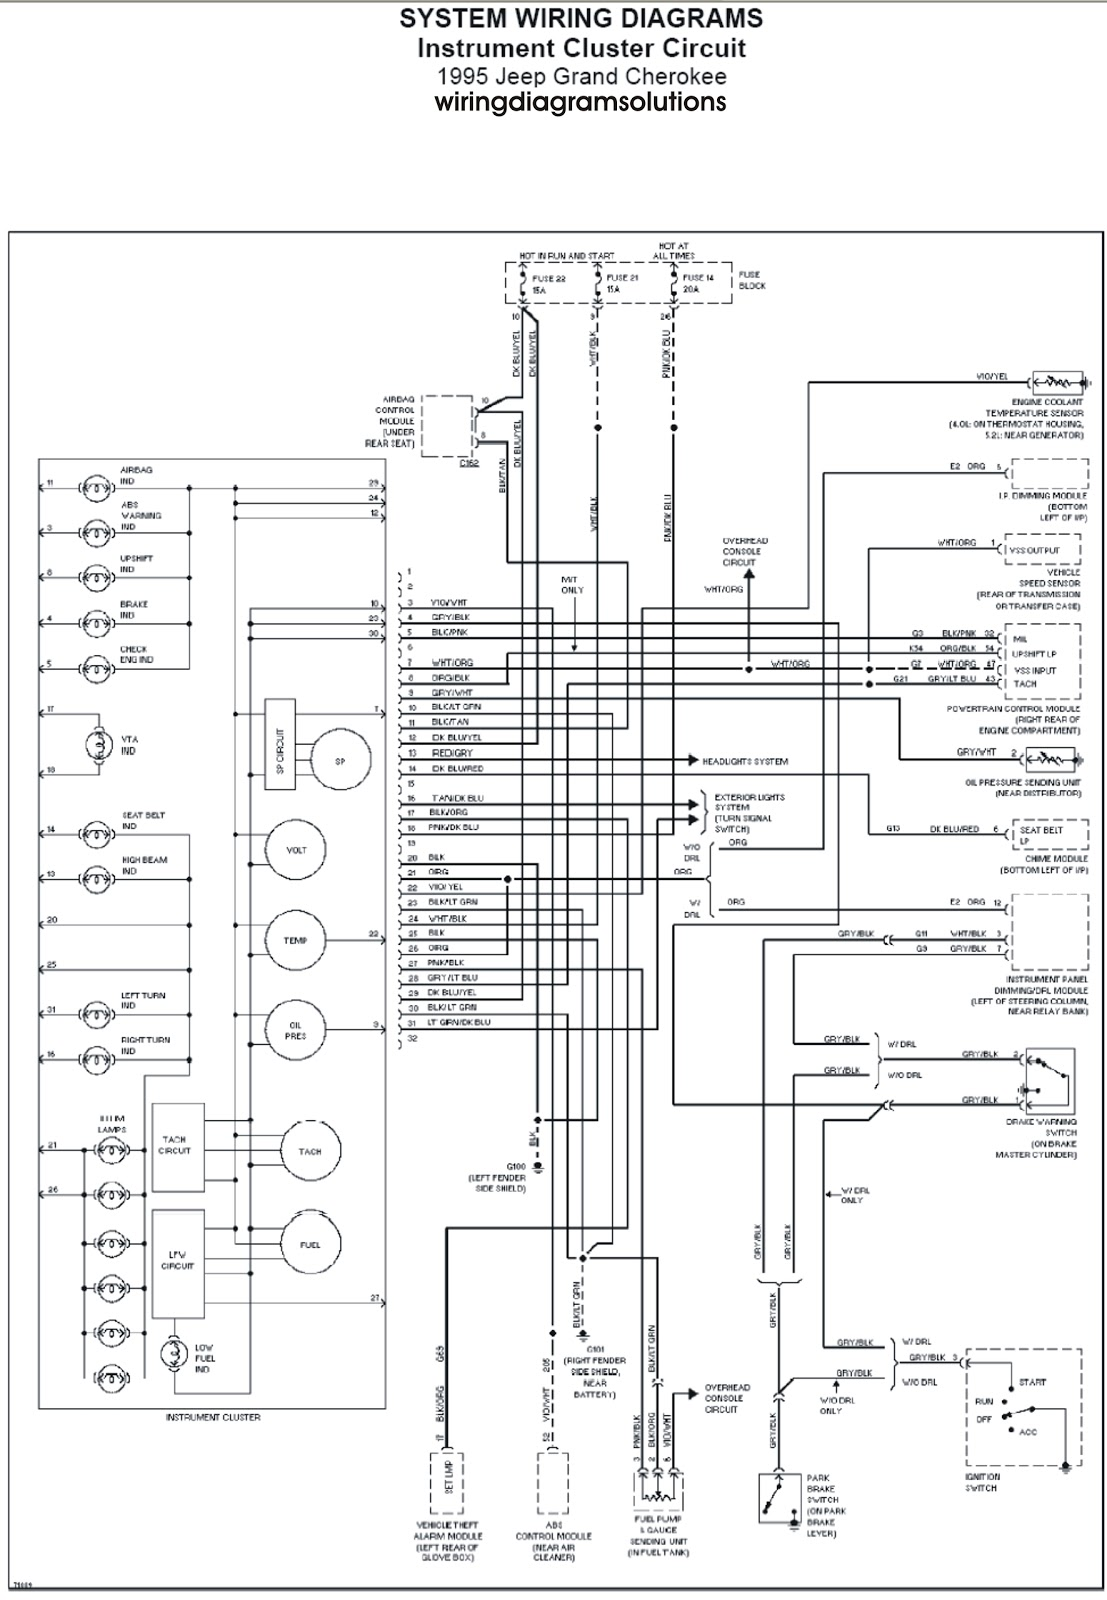 DIAGRAM] 92 Jeep Cherokee Radio Wiring Diagram FULL Version HD Quality Wiring  Diagram - DATA-WIRINGONLINE.BORGOCONTESSA.ITdata-wiringonline.borgocontessa.it